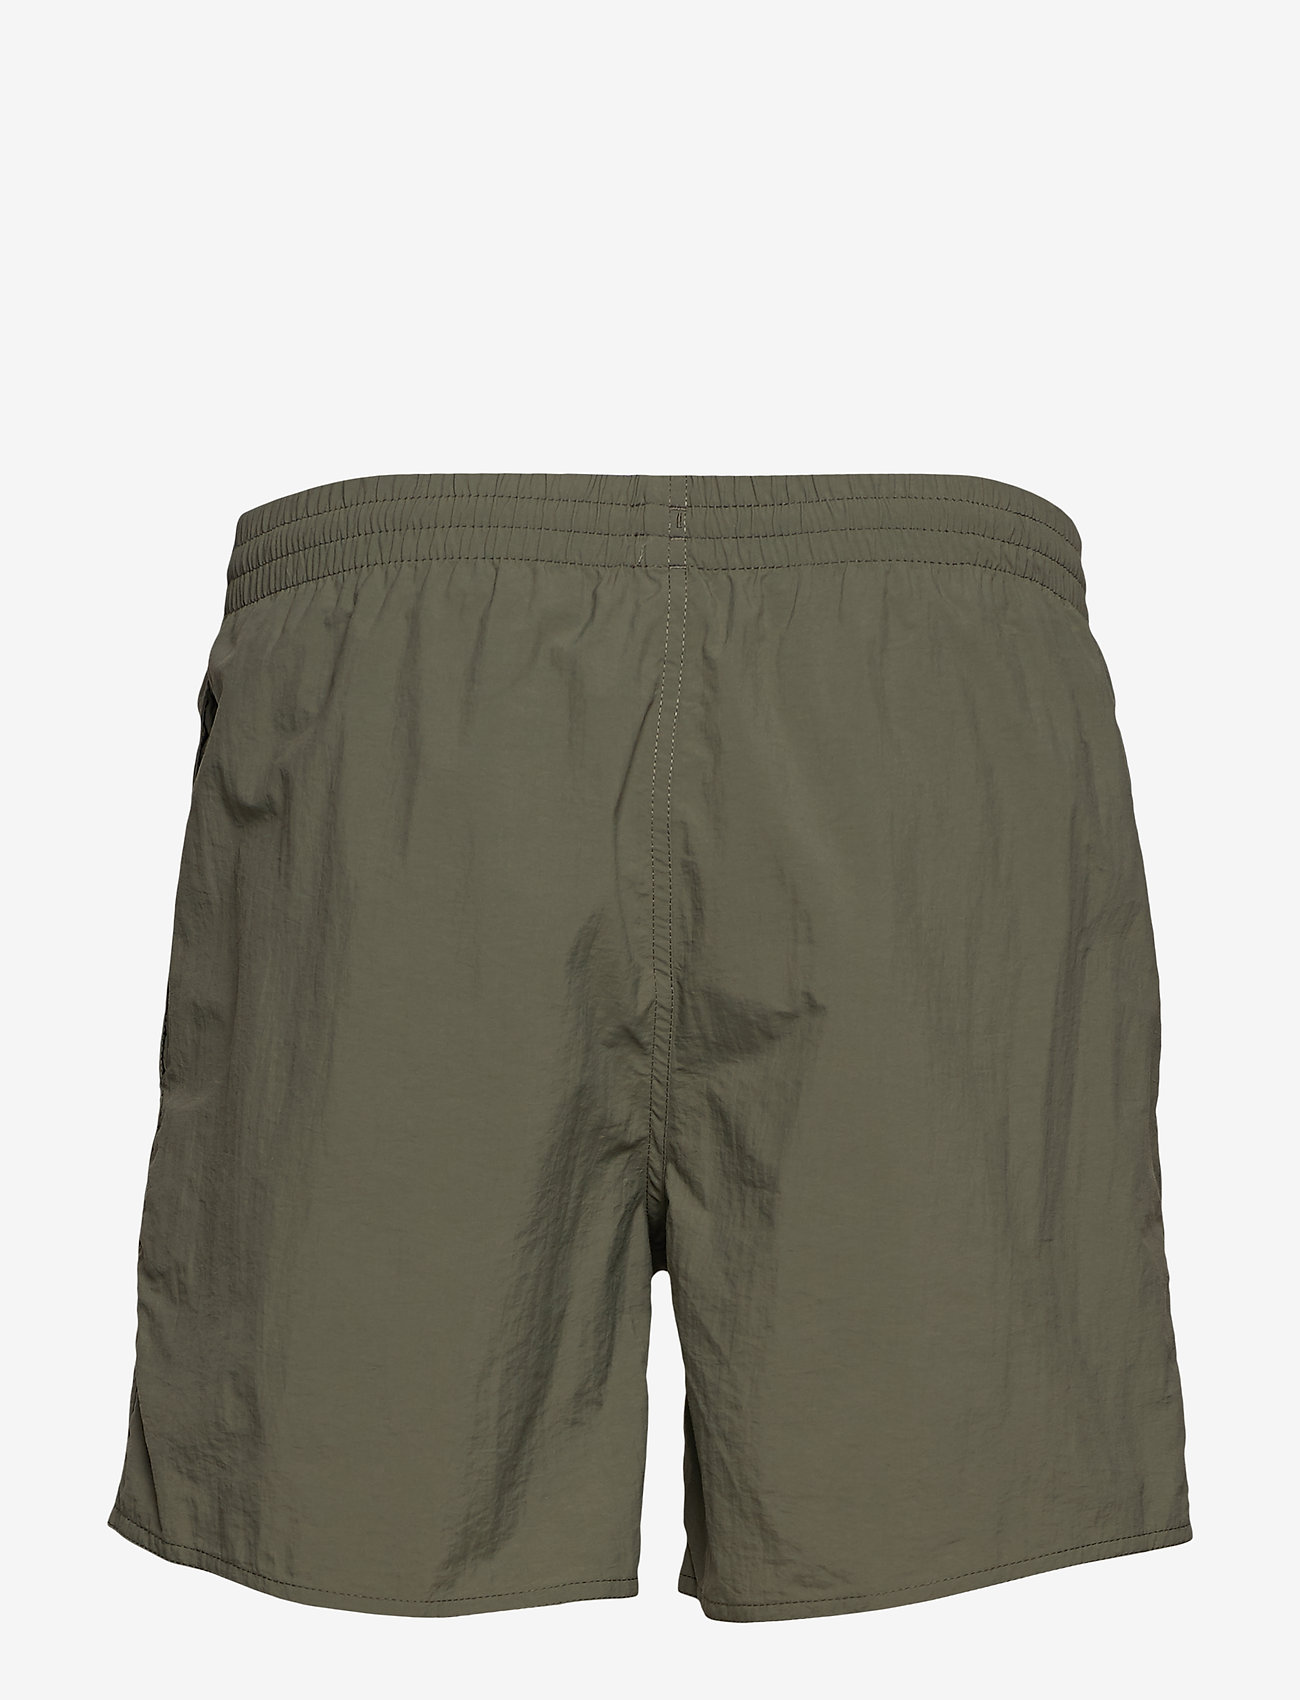 "Speedo - Essentials 16"" Watershort - uimashortsit - hedgerow - 1"